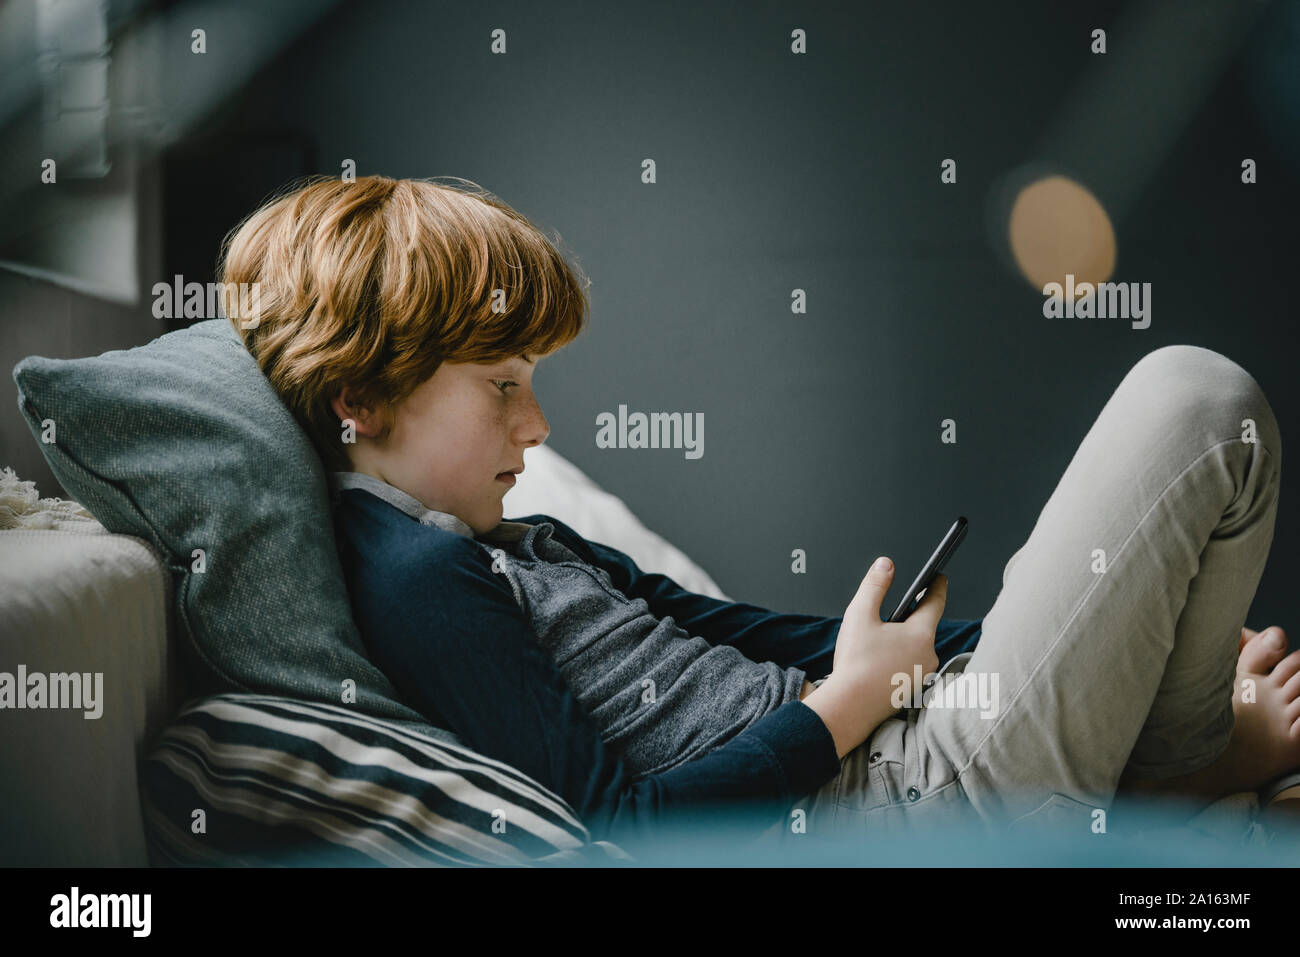 Redheaded boy lying on couch looking at cell phone Stock Photo